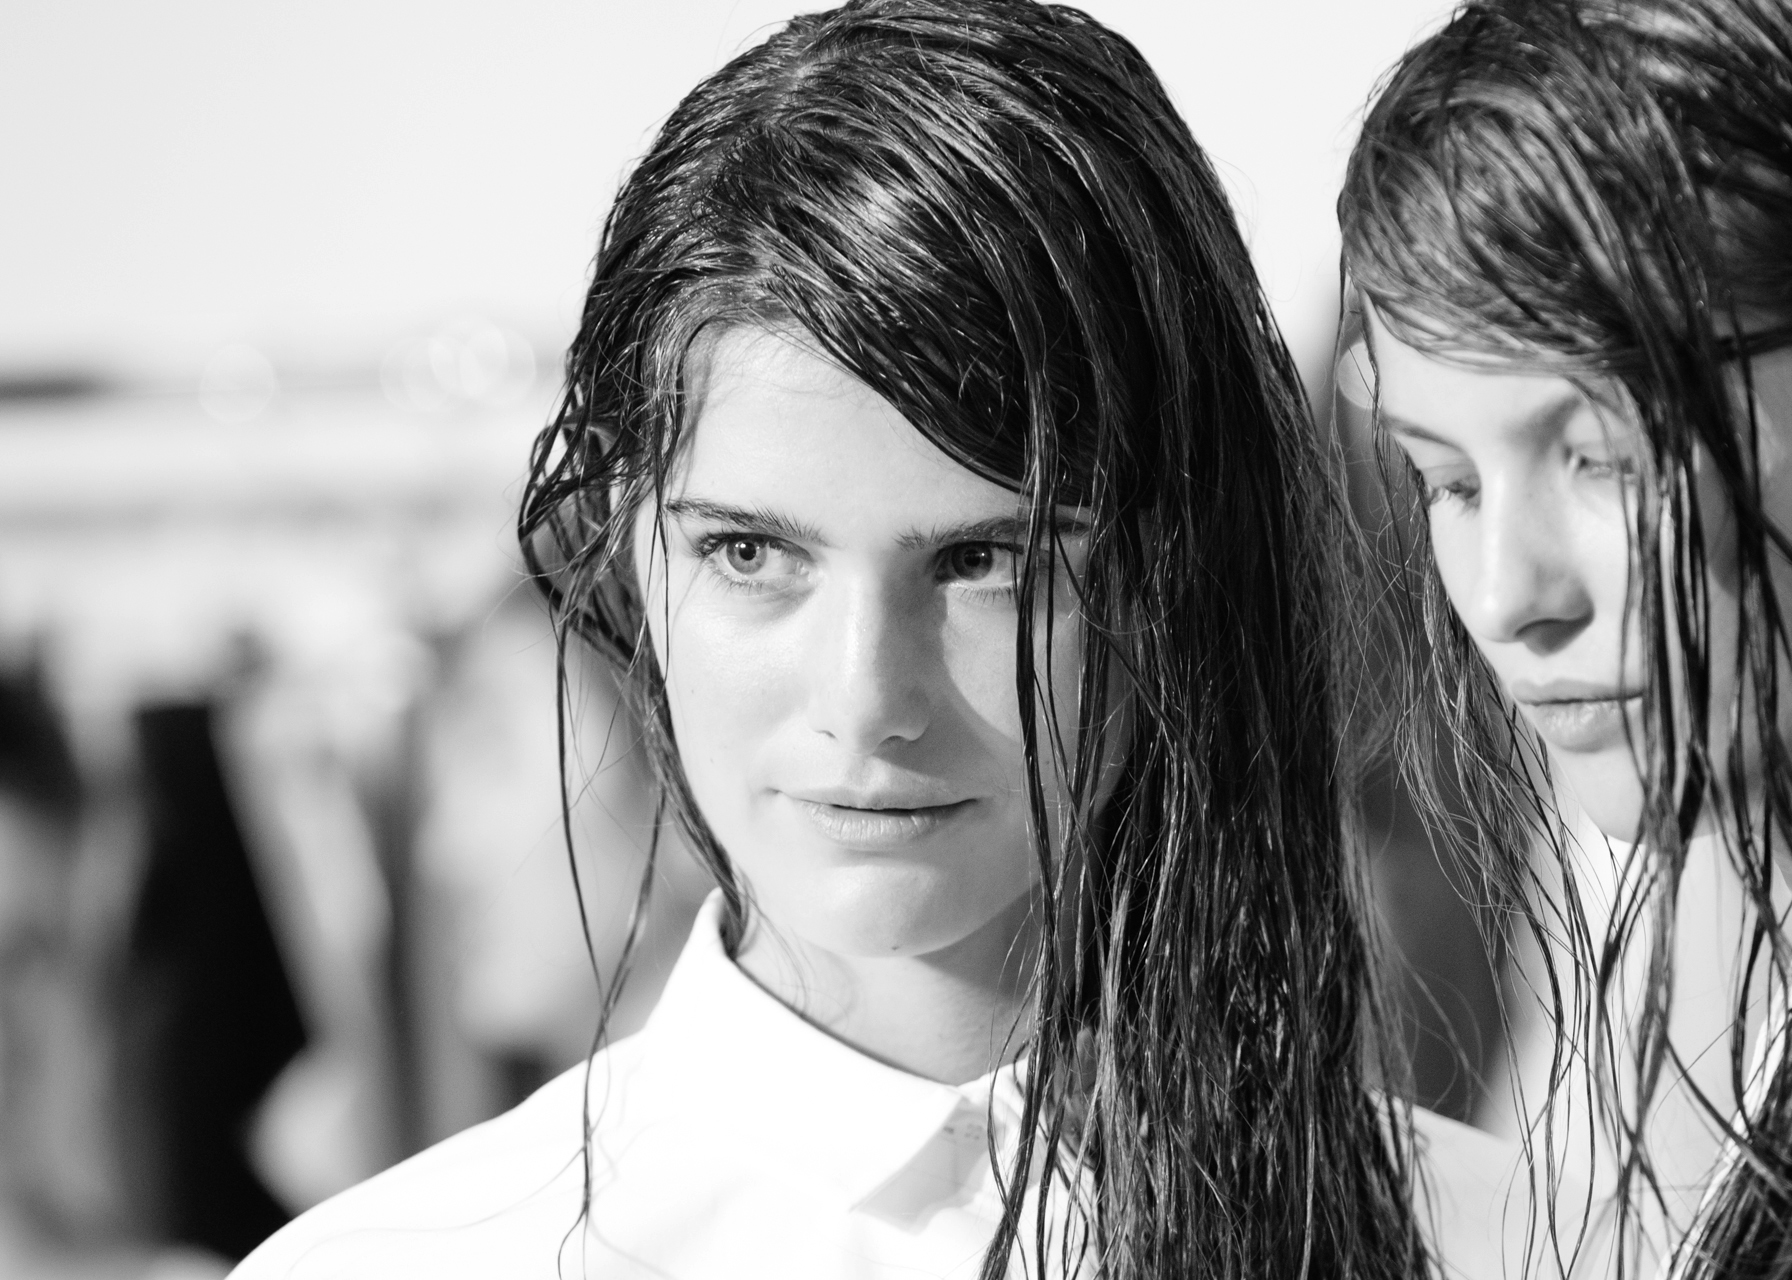 09-jacquemus-ss15-model